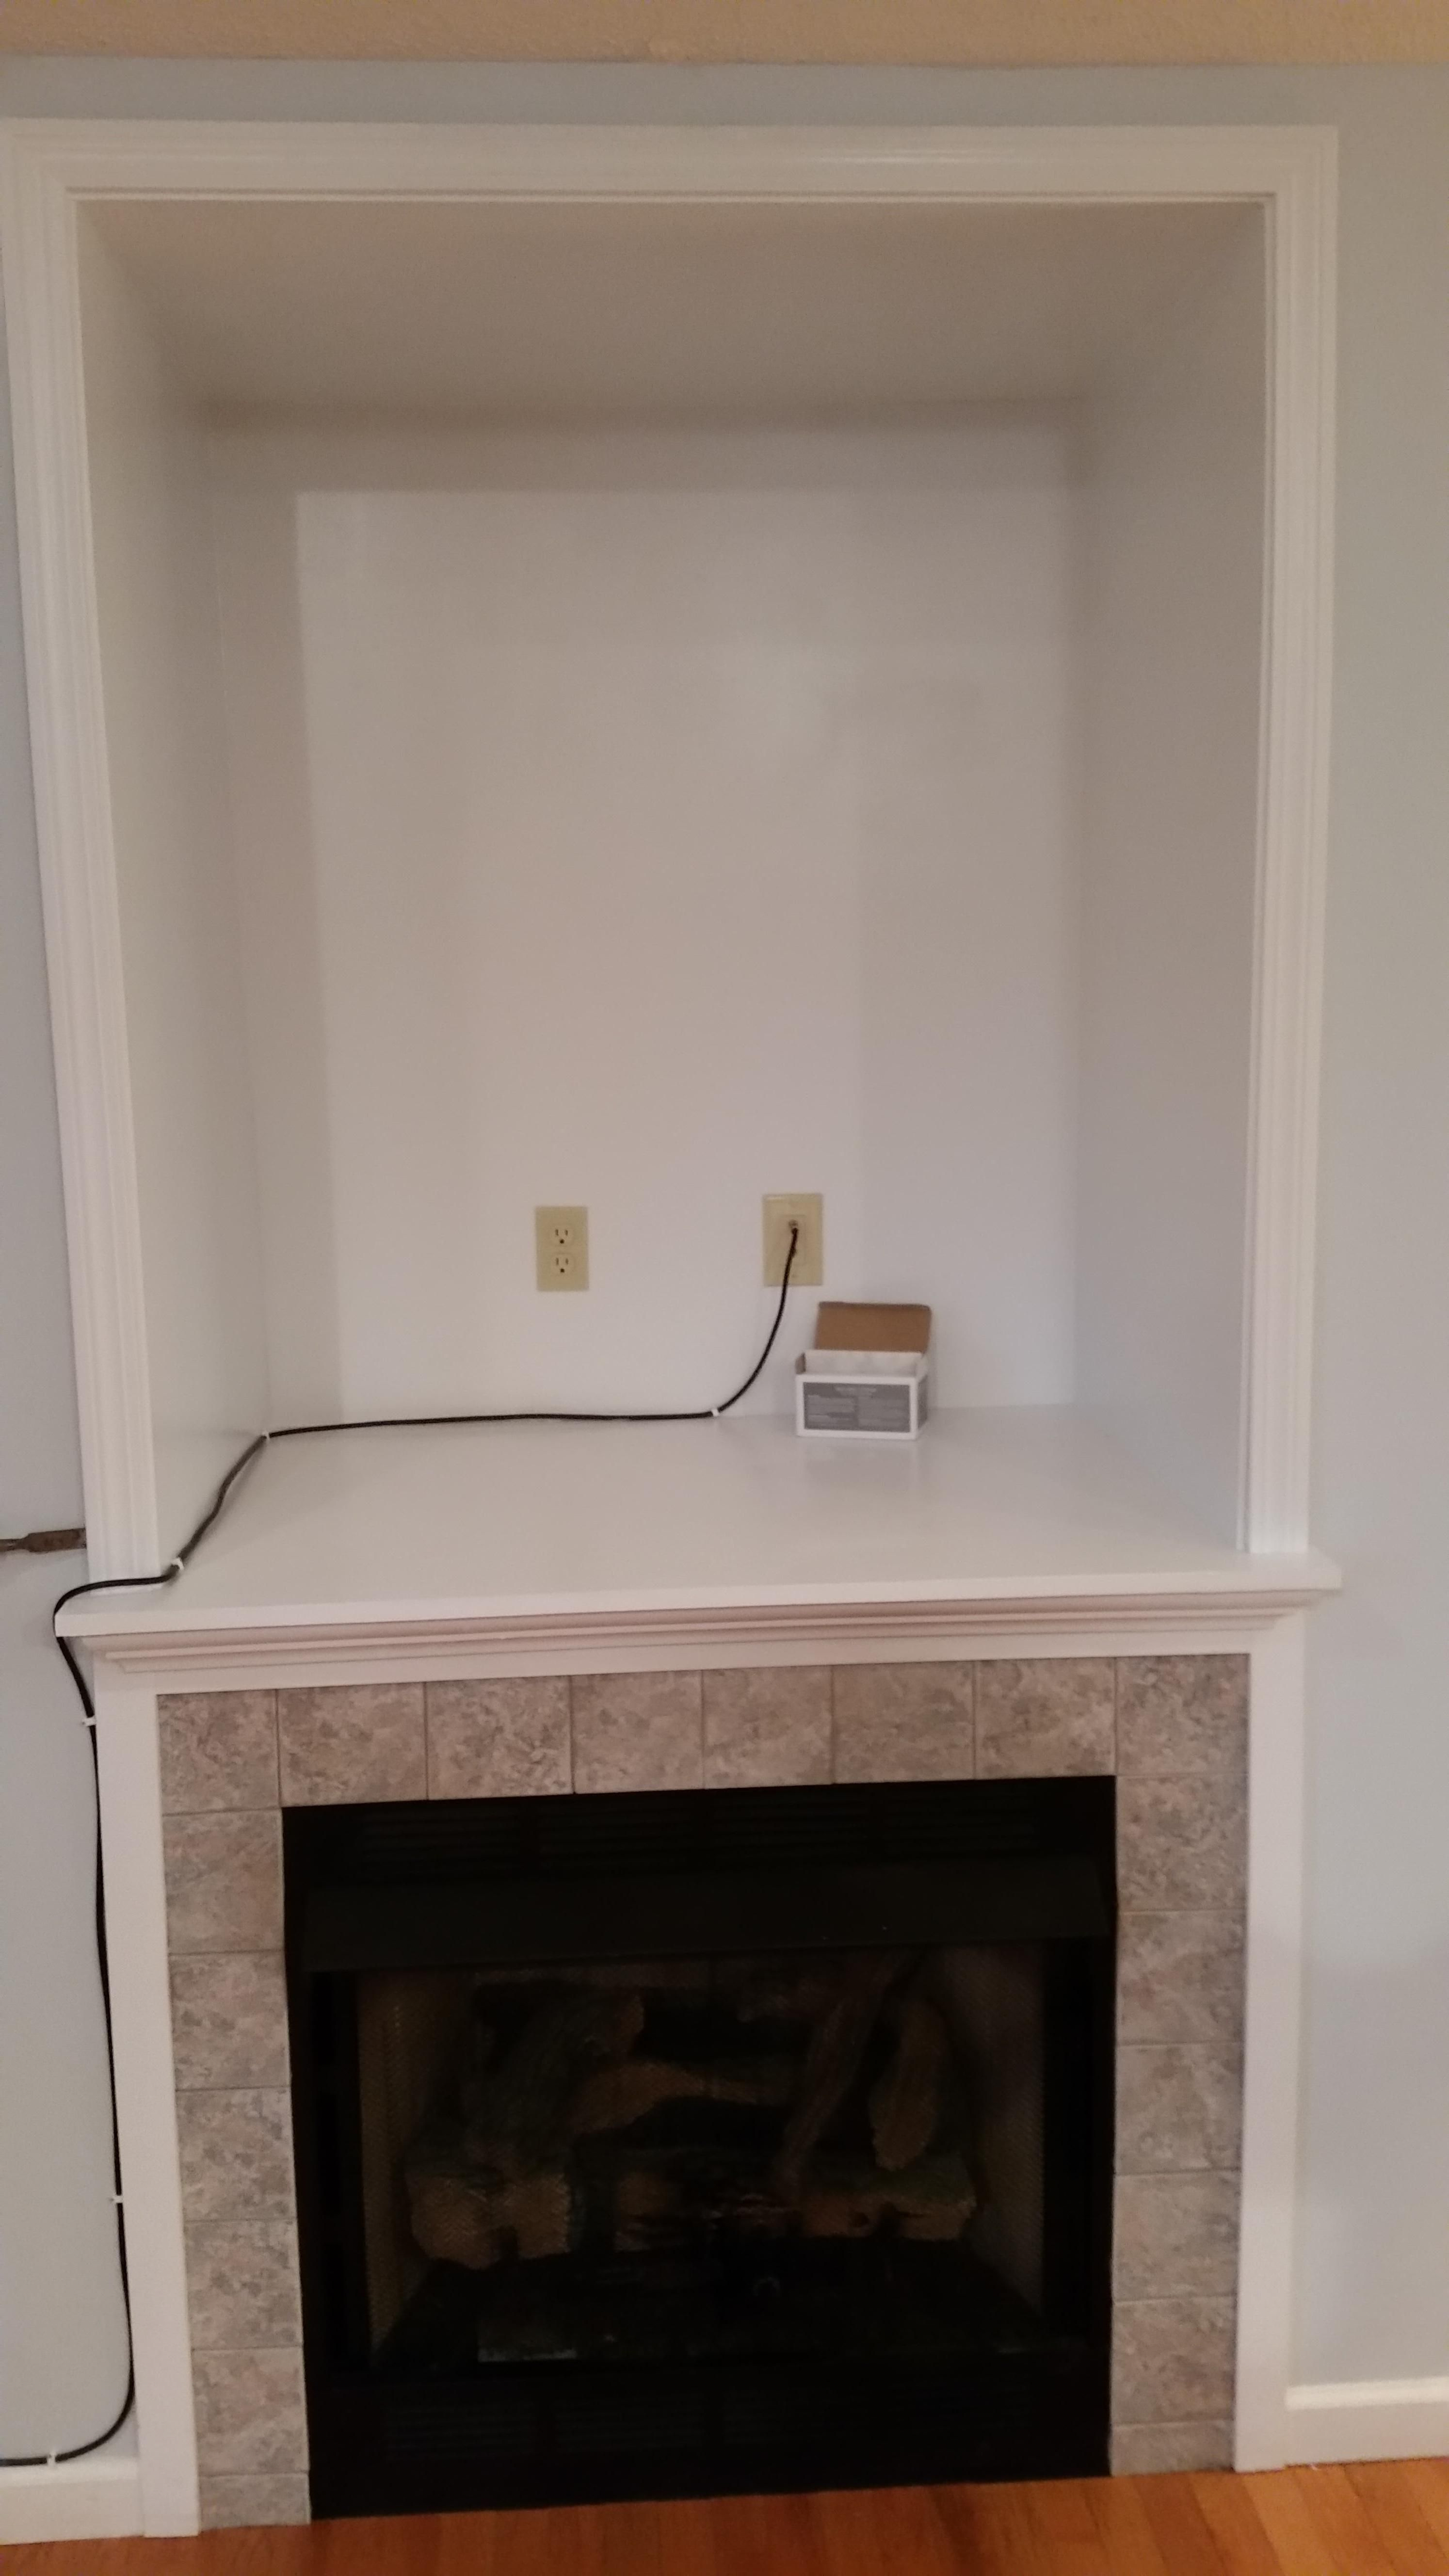 I turned a old tV nook into a fireplace mantel with a